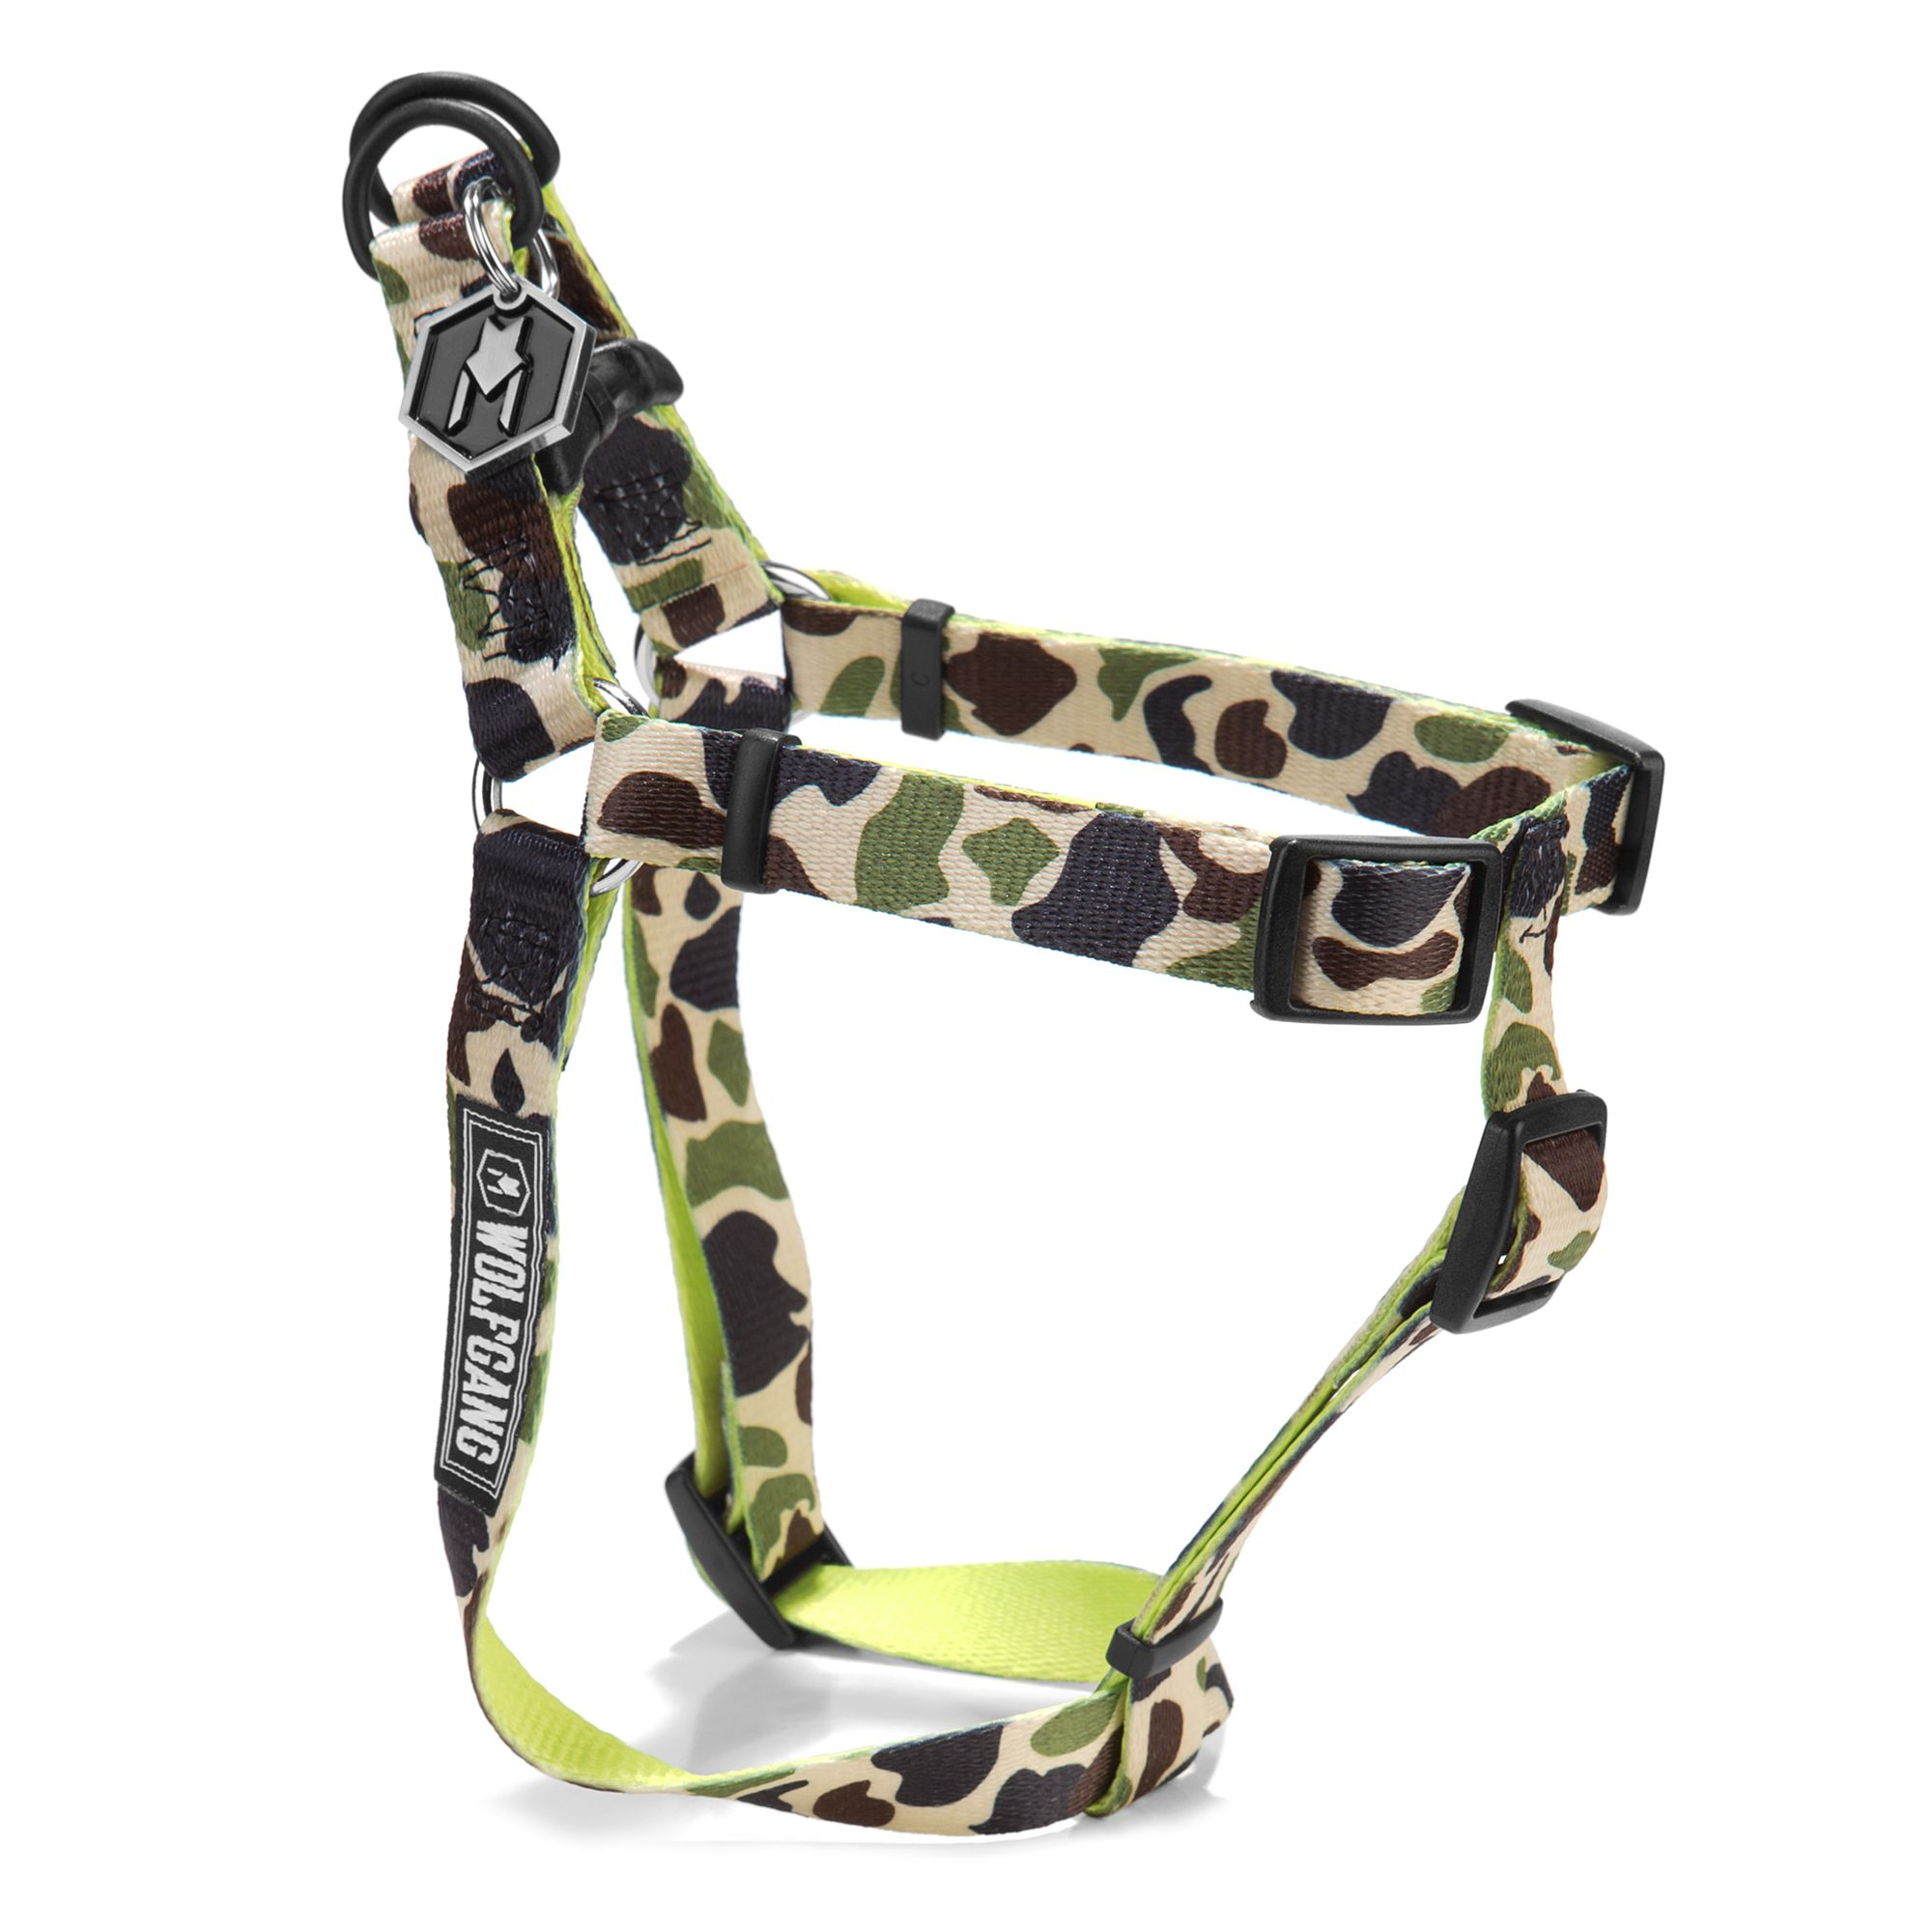 Wolfgang Man and Beast DuckLime Dog Harness size: Small, Wolfgang Man & Beast 5262423